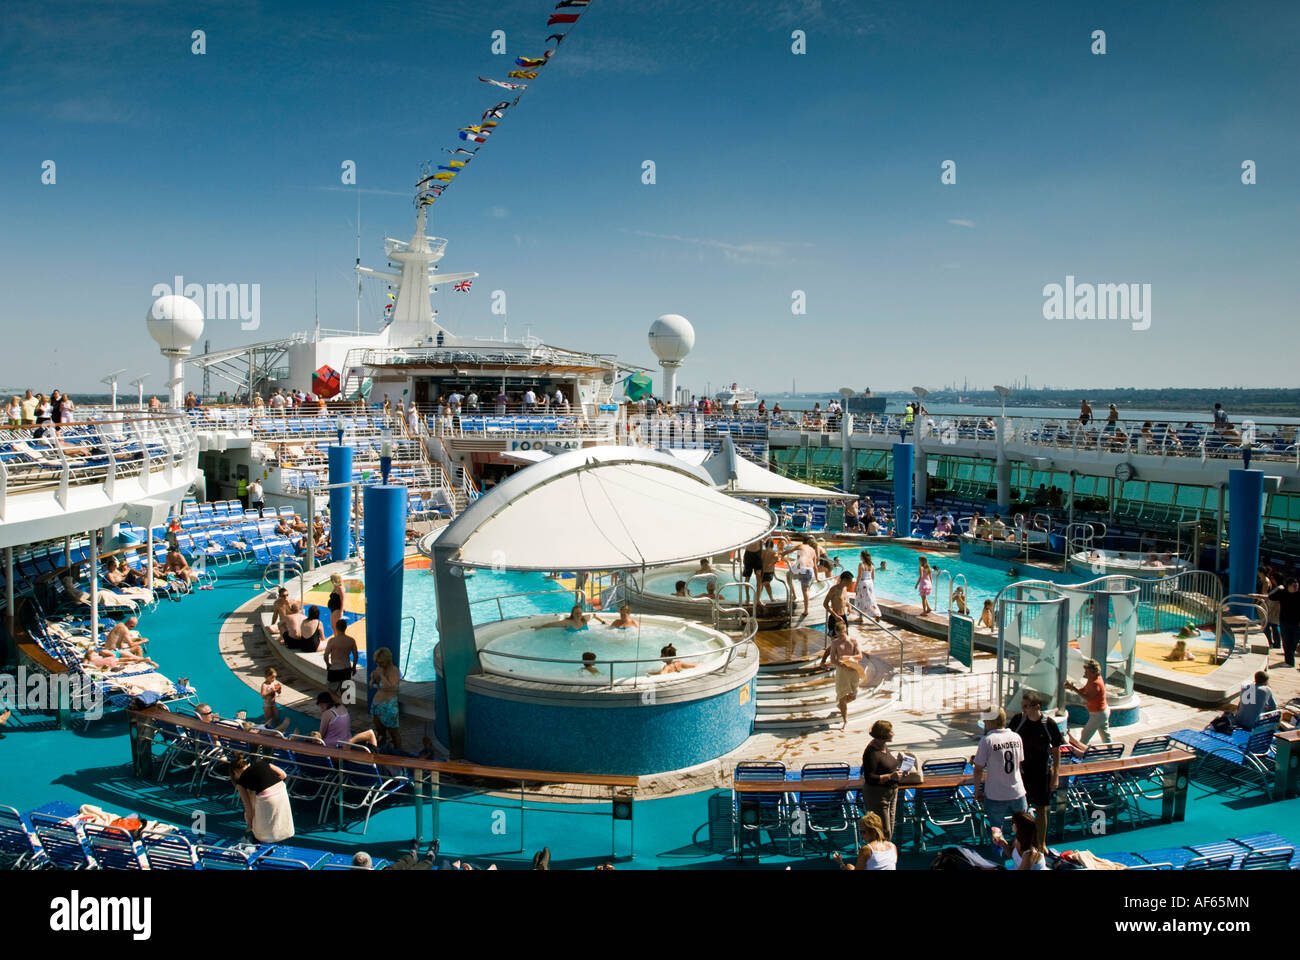 The massive  seawater swimming pool area on a cruise liner Stock Photo